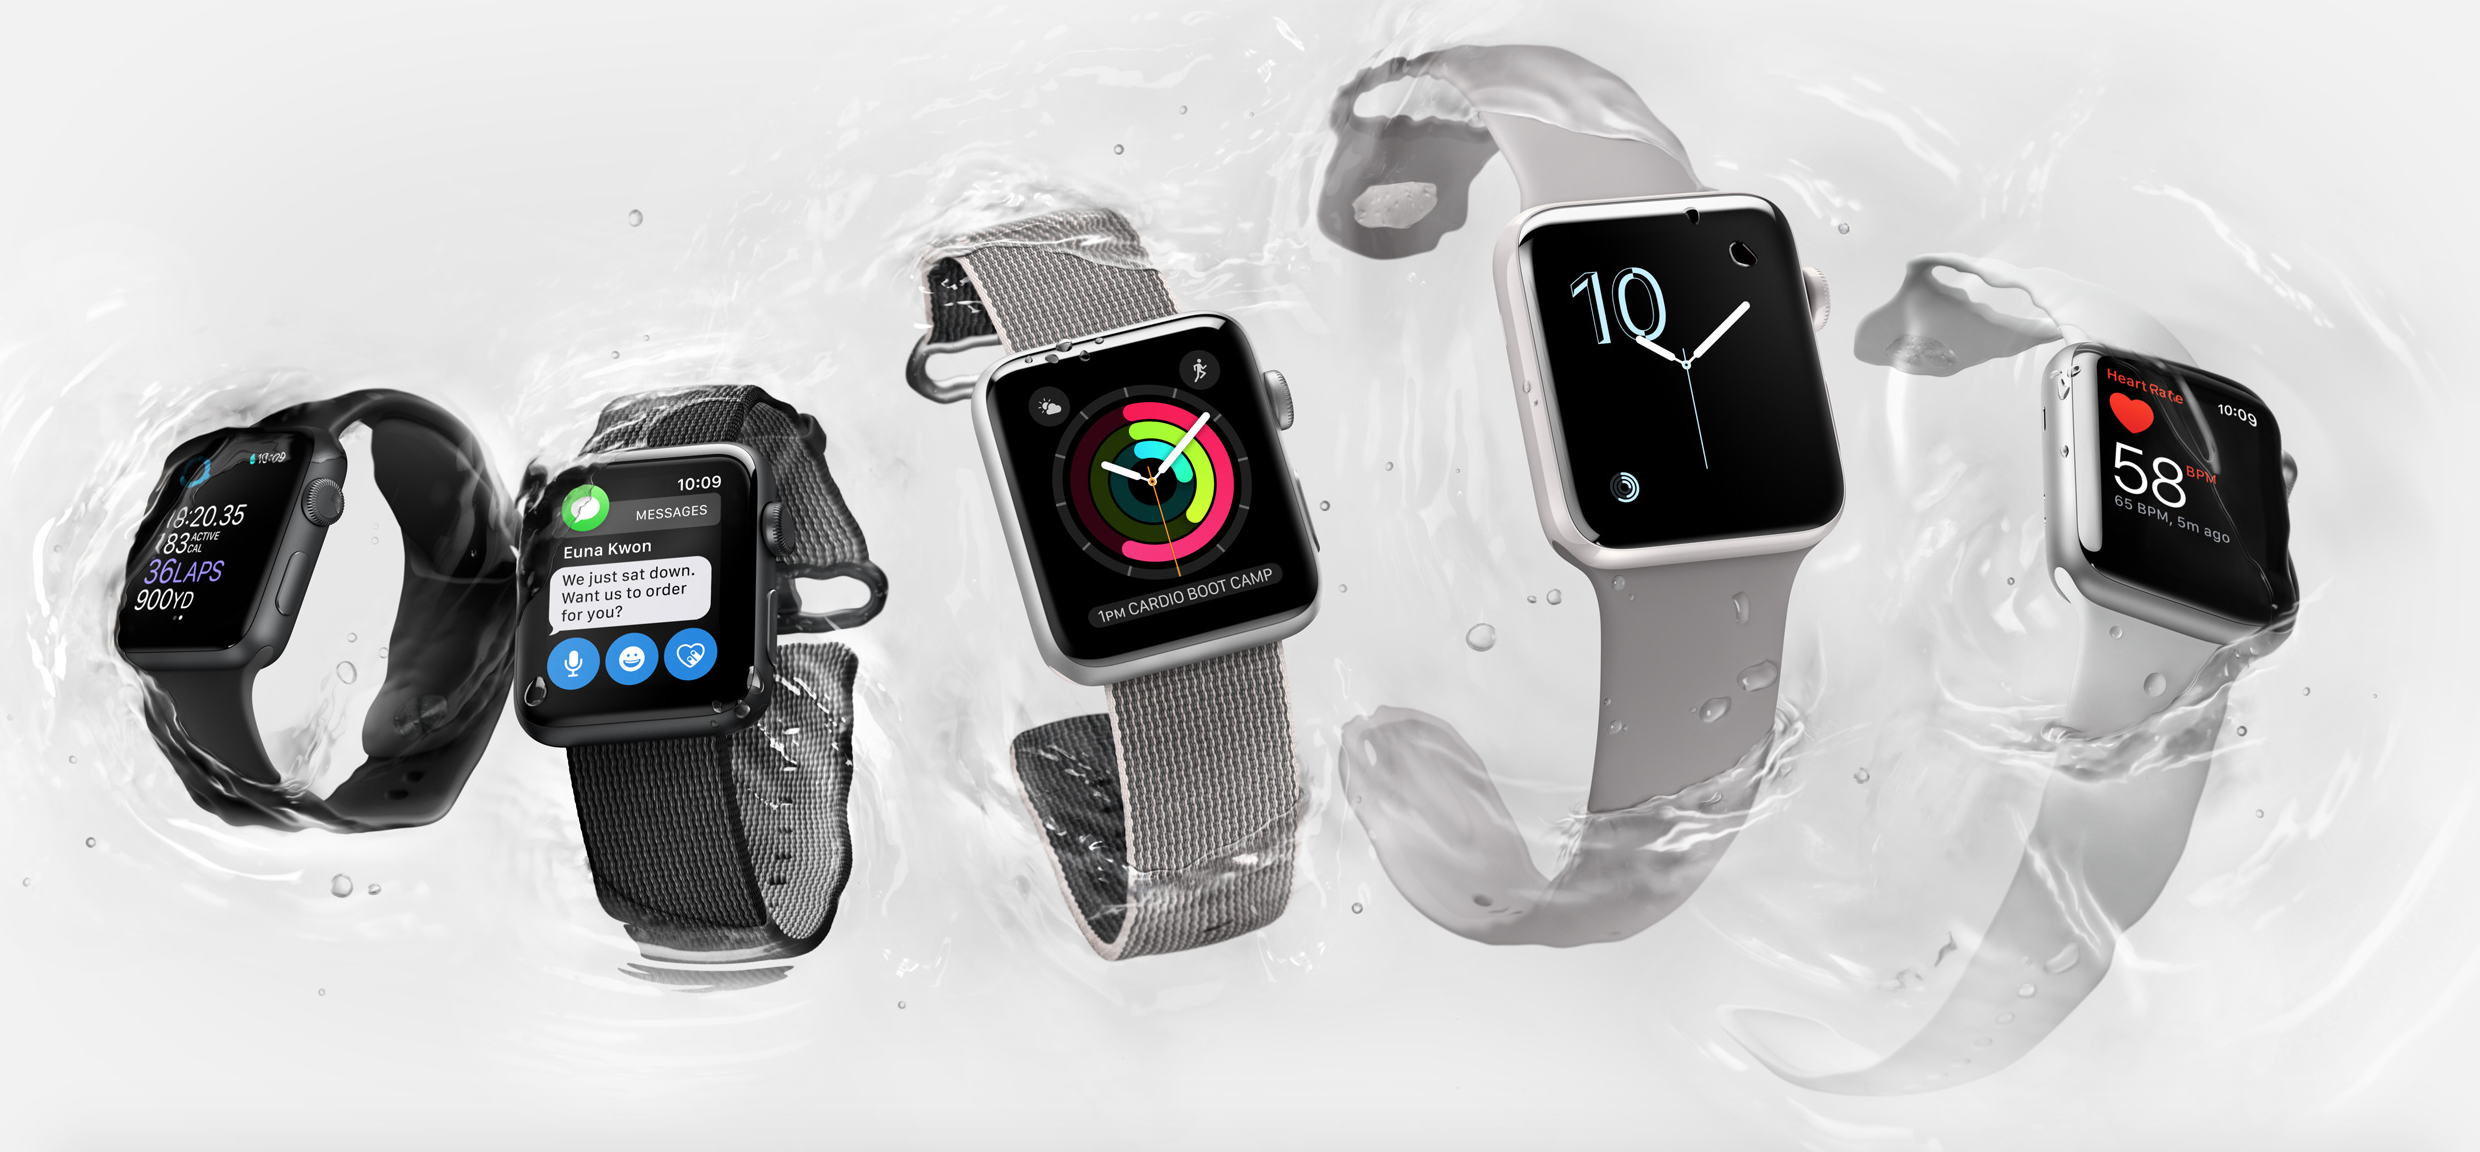 Pick Up a Genuine Apple Watch Sport Band or Woven Nylon Band for $18